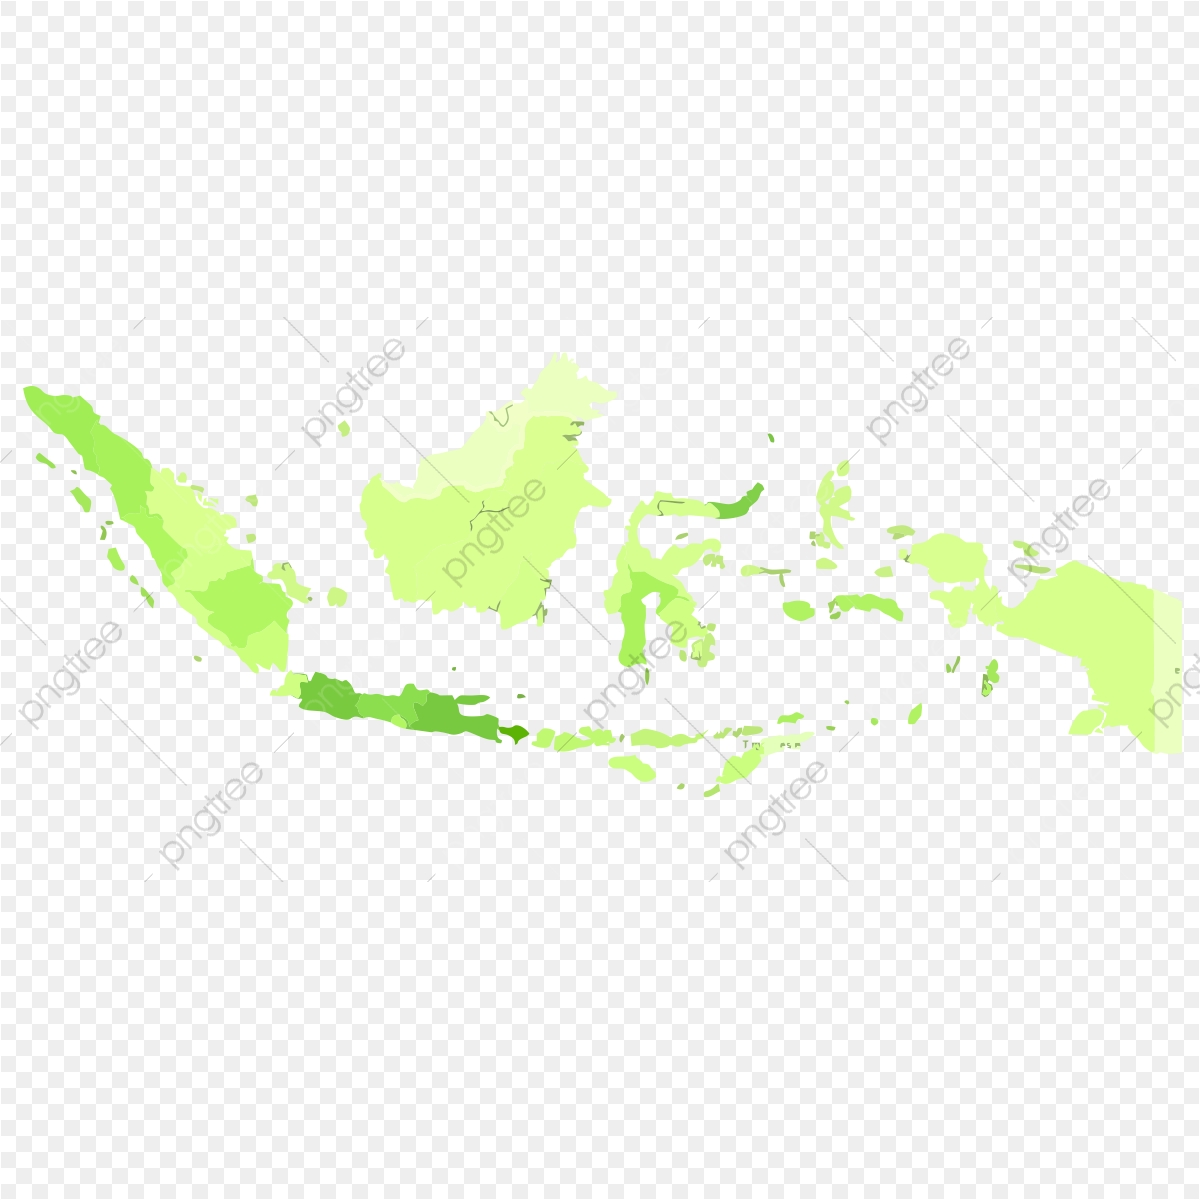 Map Indonesia, Png, Green, White PNG and Vector with Transparent.